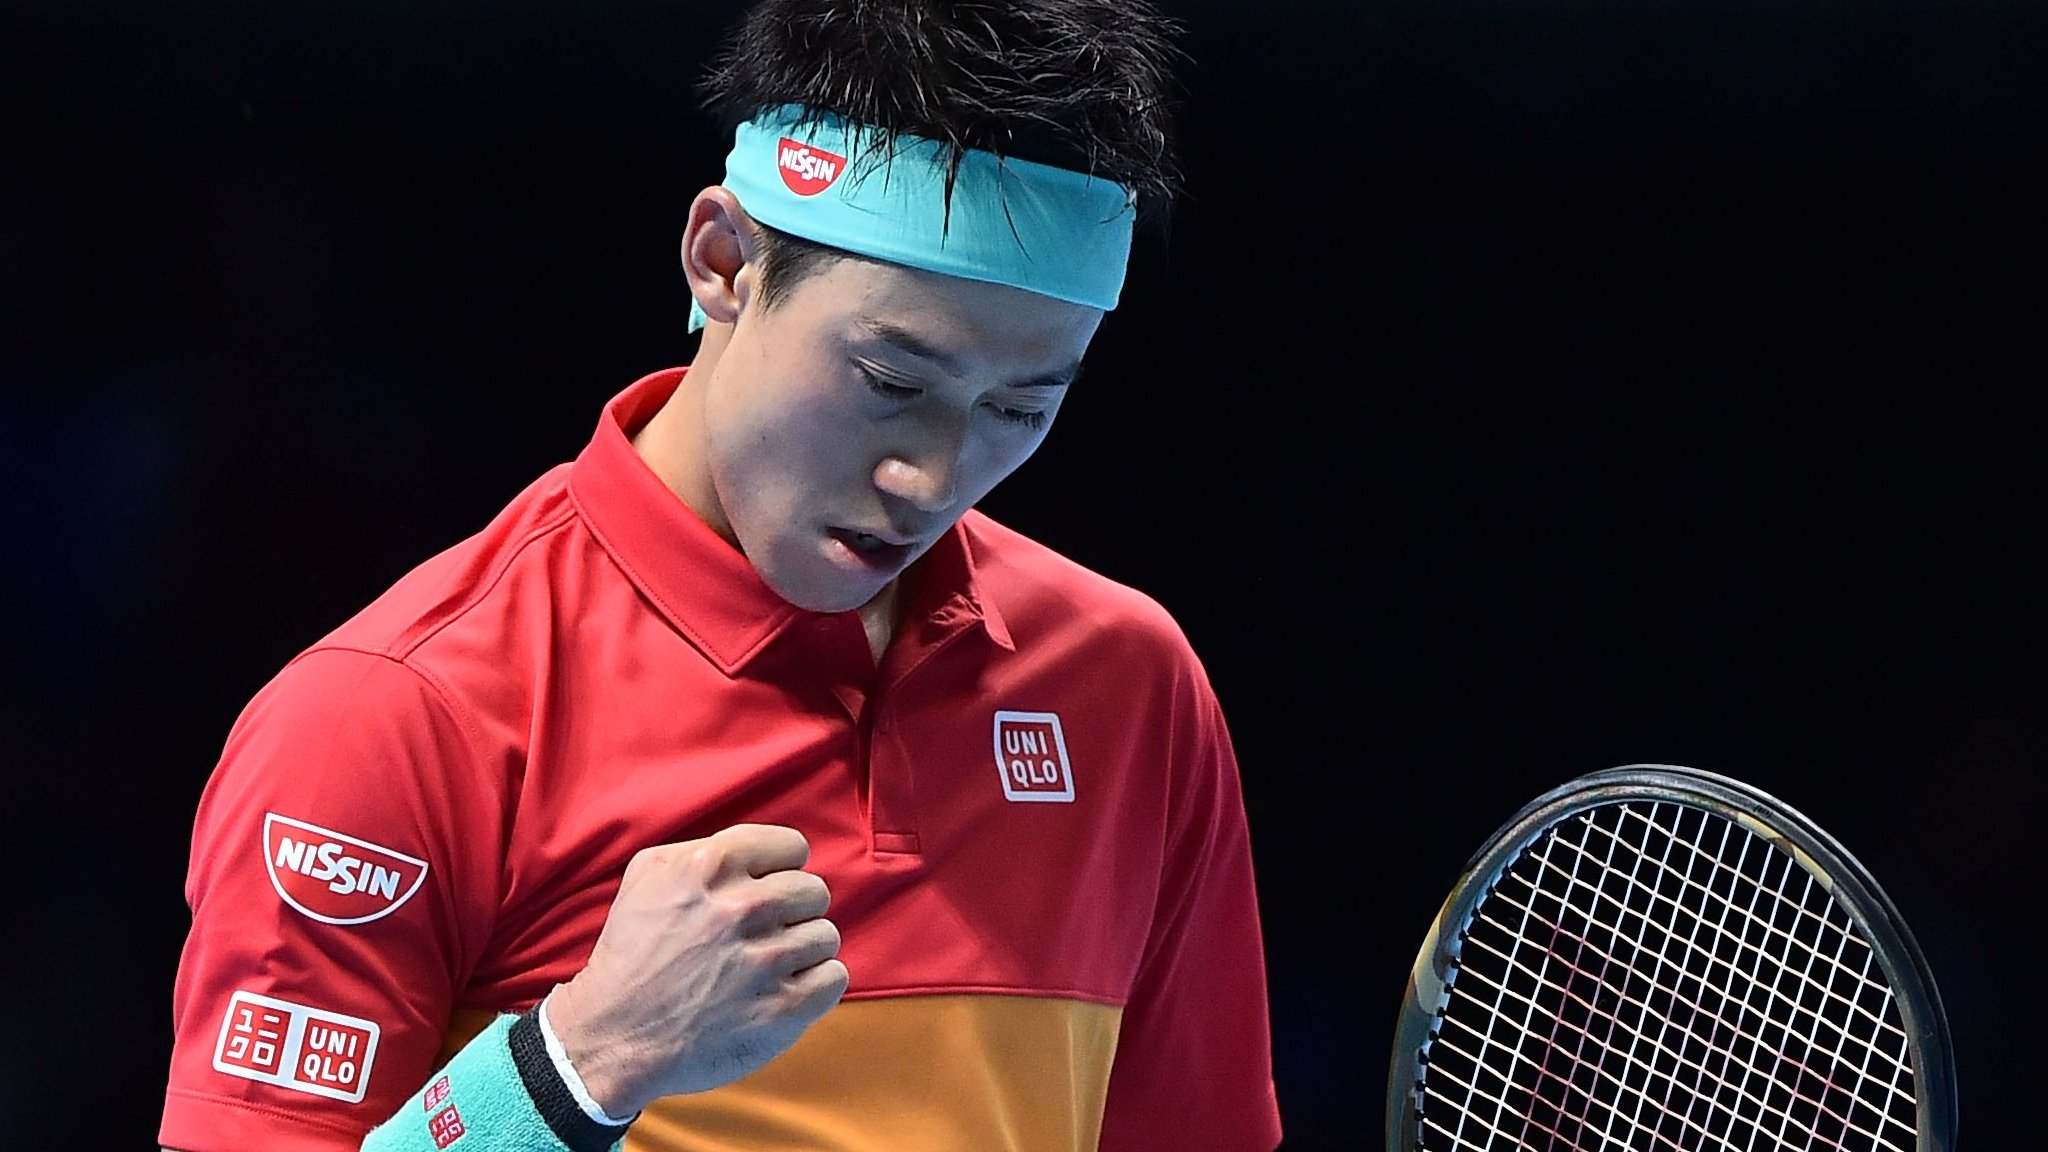 Out-of-sorts Federer loses to Nishikori in ATP Finals opener